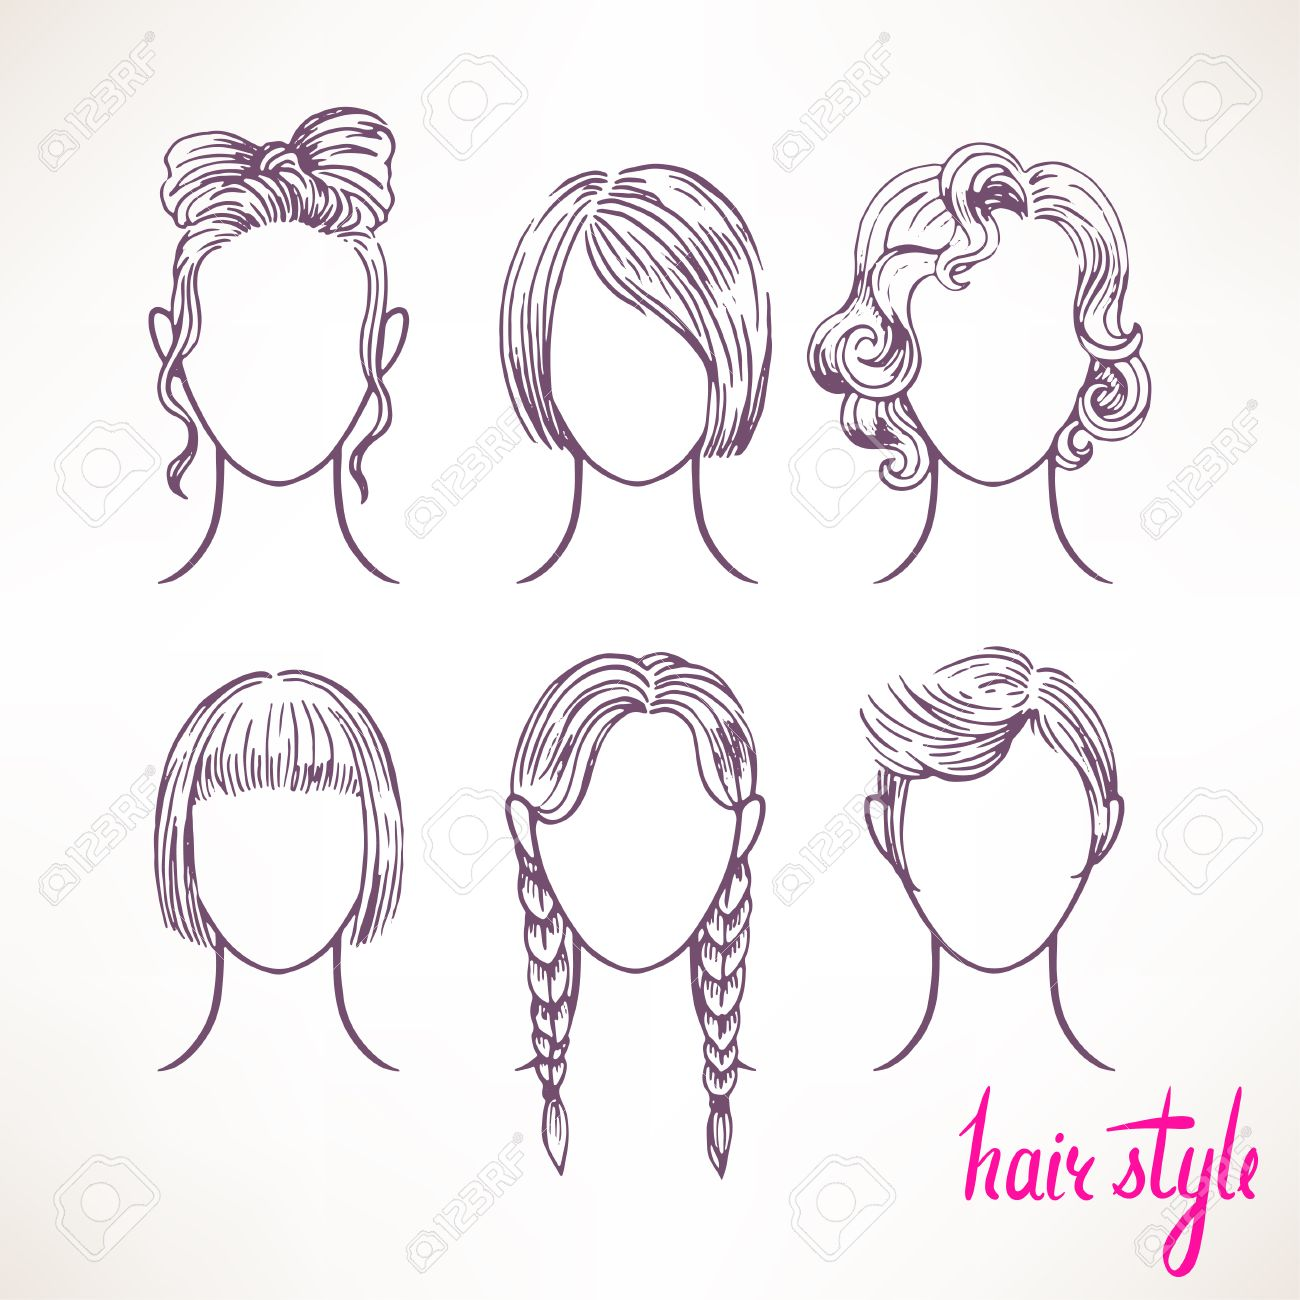 set with different hairstyles. hand,drawn illustration , 2